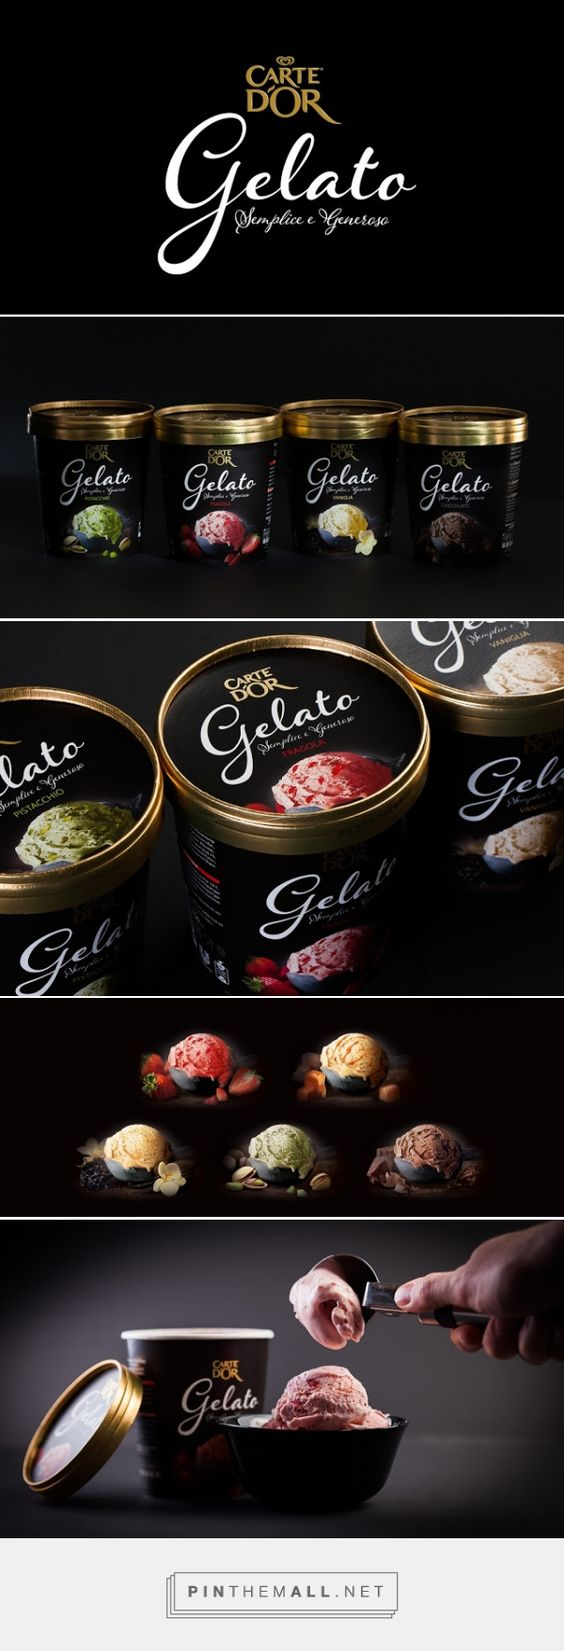 #Unilever Carte D'Or #Gelato #packaging designed by MILDBERRY​ - http://www.packagingoftheworld.com/2015/05/unilever-carte-dor-gelato.html